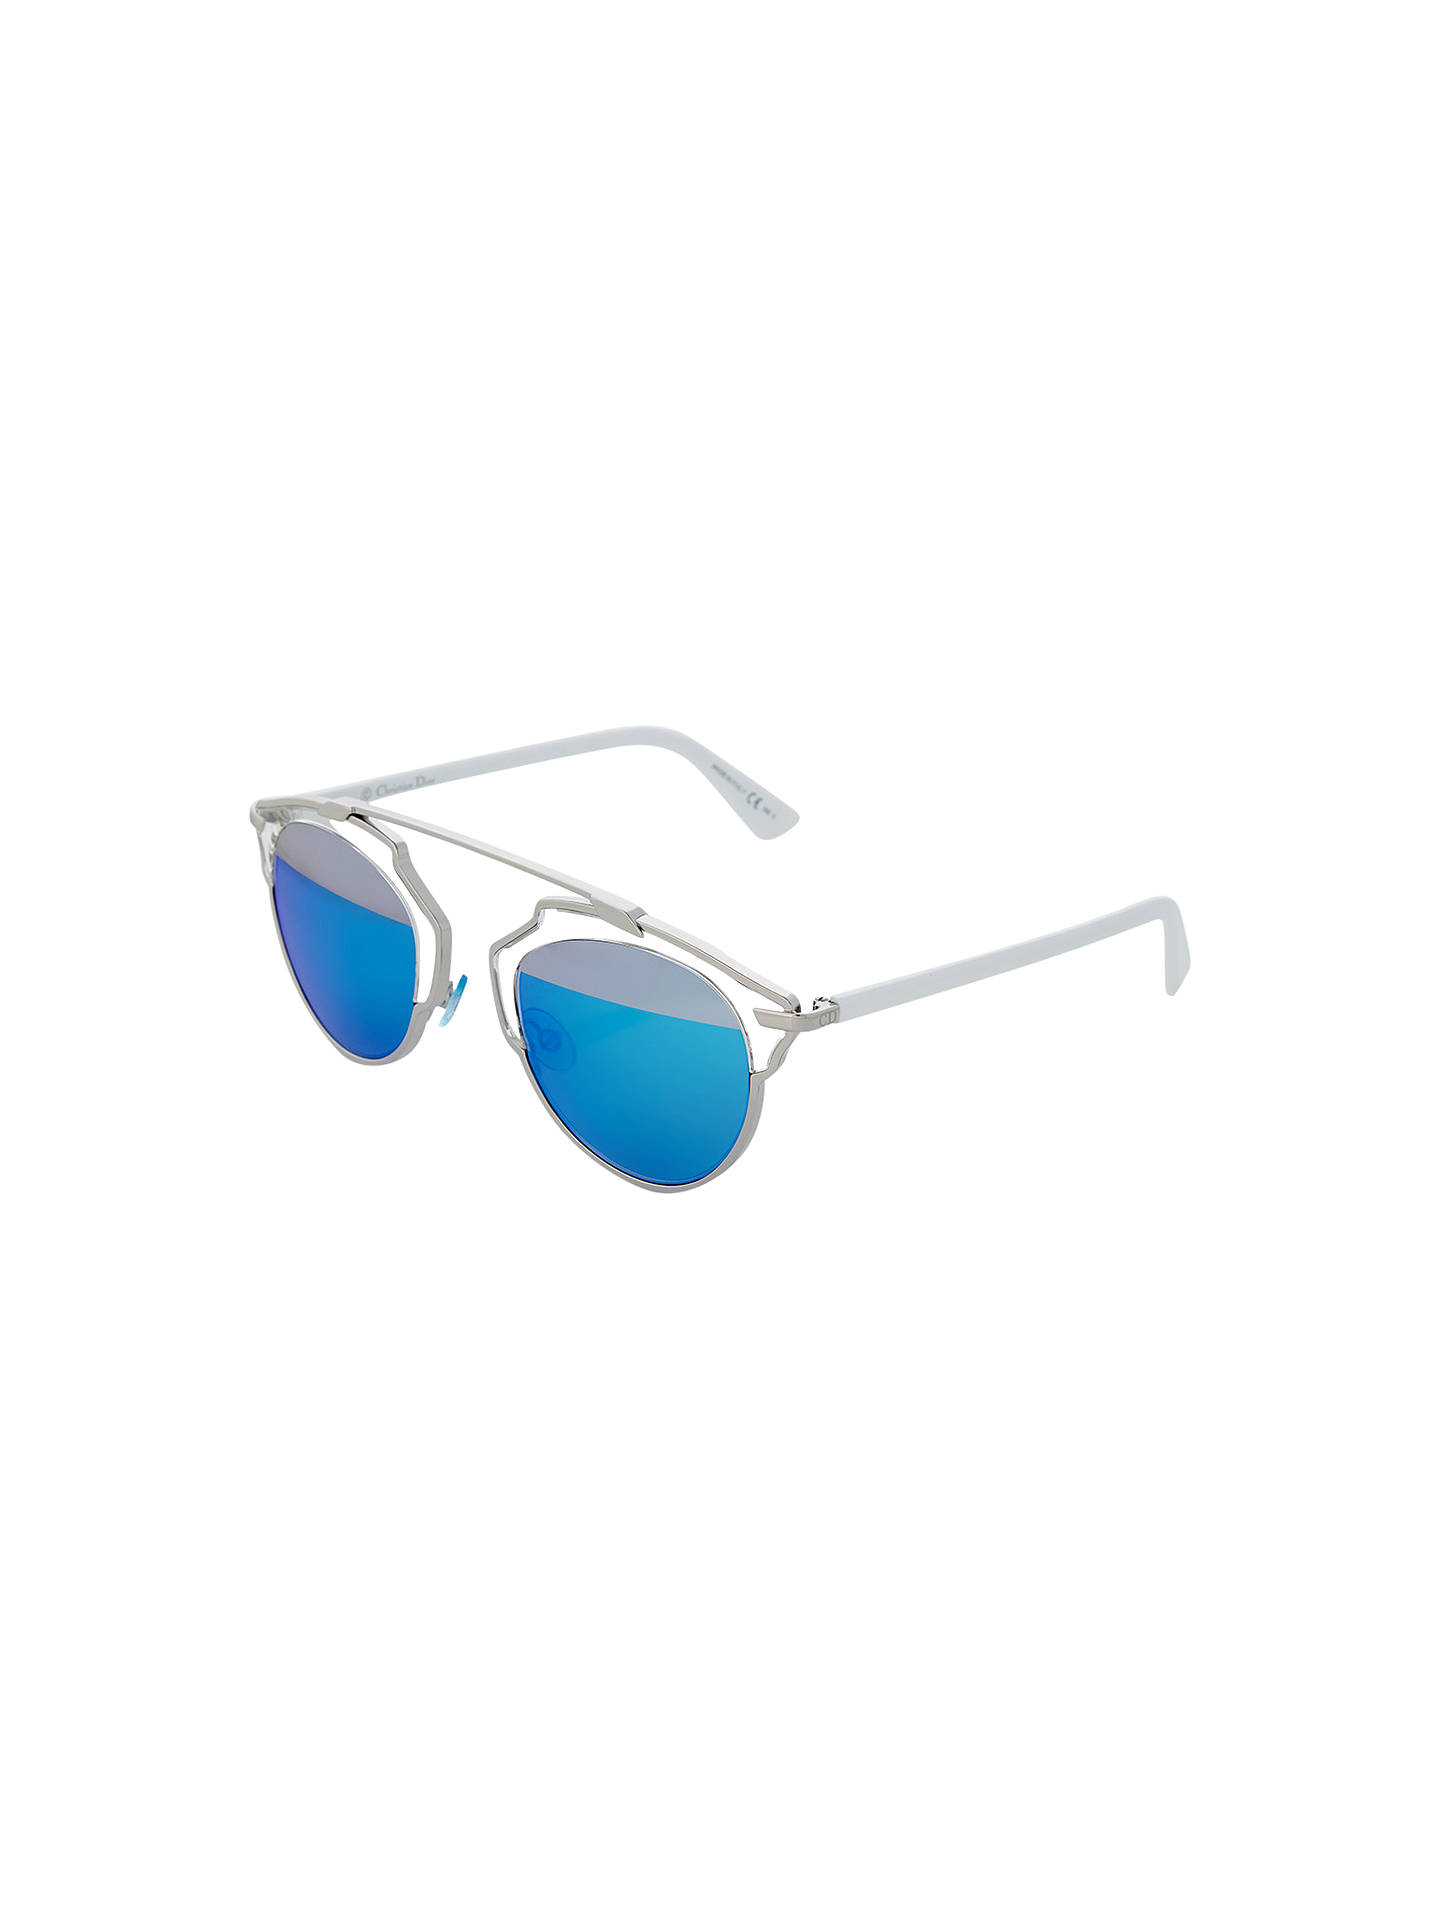 Buy Dior Diorsoreal Round Sunglasses, Silver/Lagoon Blue Online at johnlewis.com